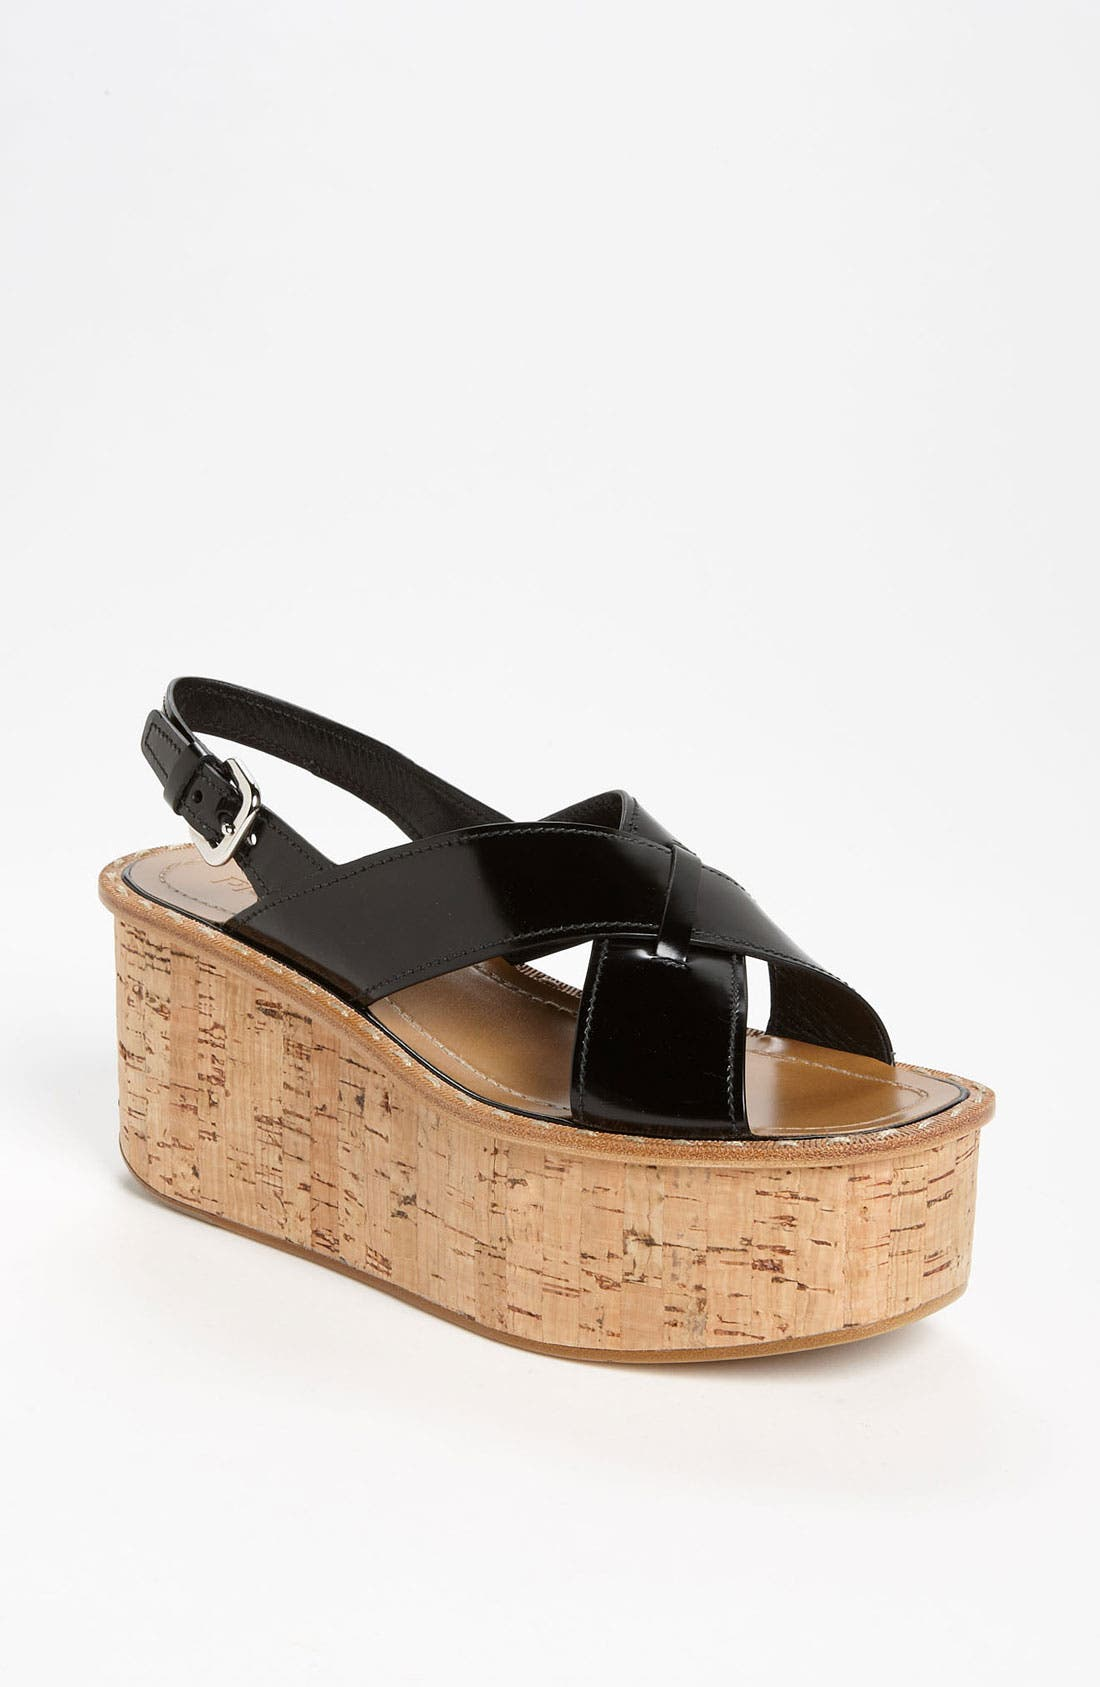 Alternate Image 1 Selected - Prada 'Criss Cross' Wedge Sandal